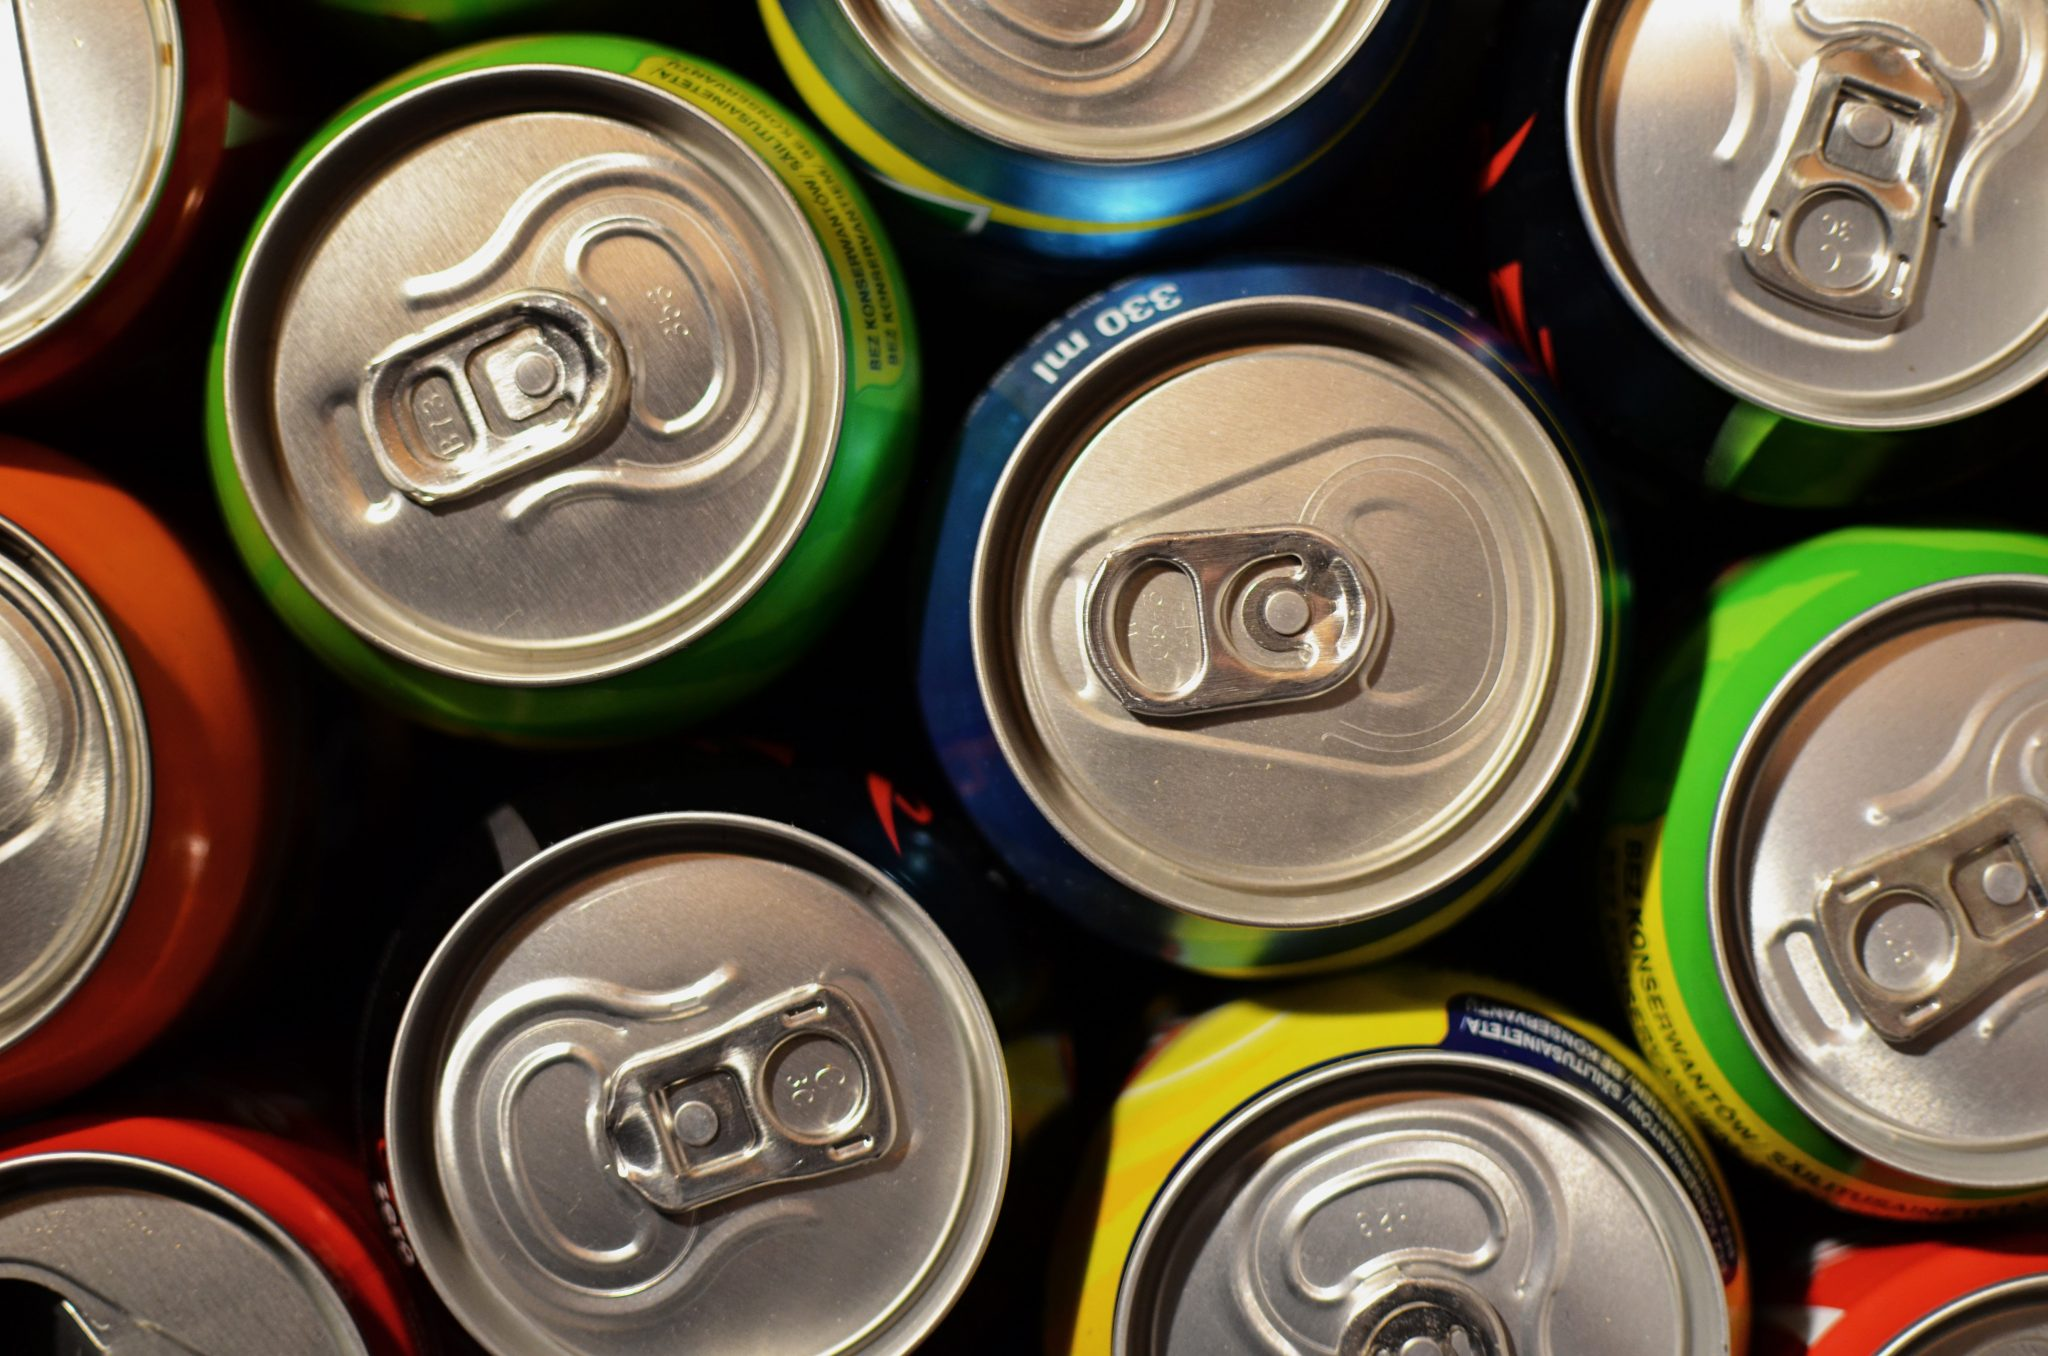 Coca-Cola Set To Introduce Energy Drink Globally